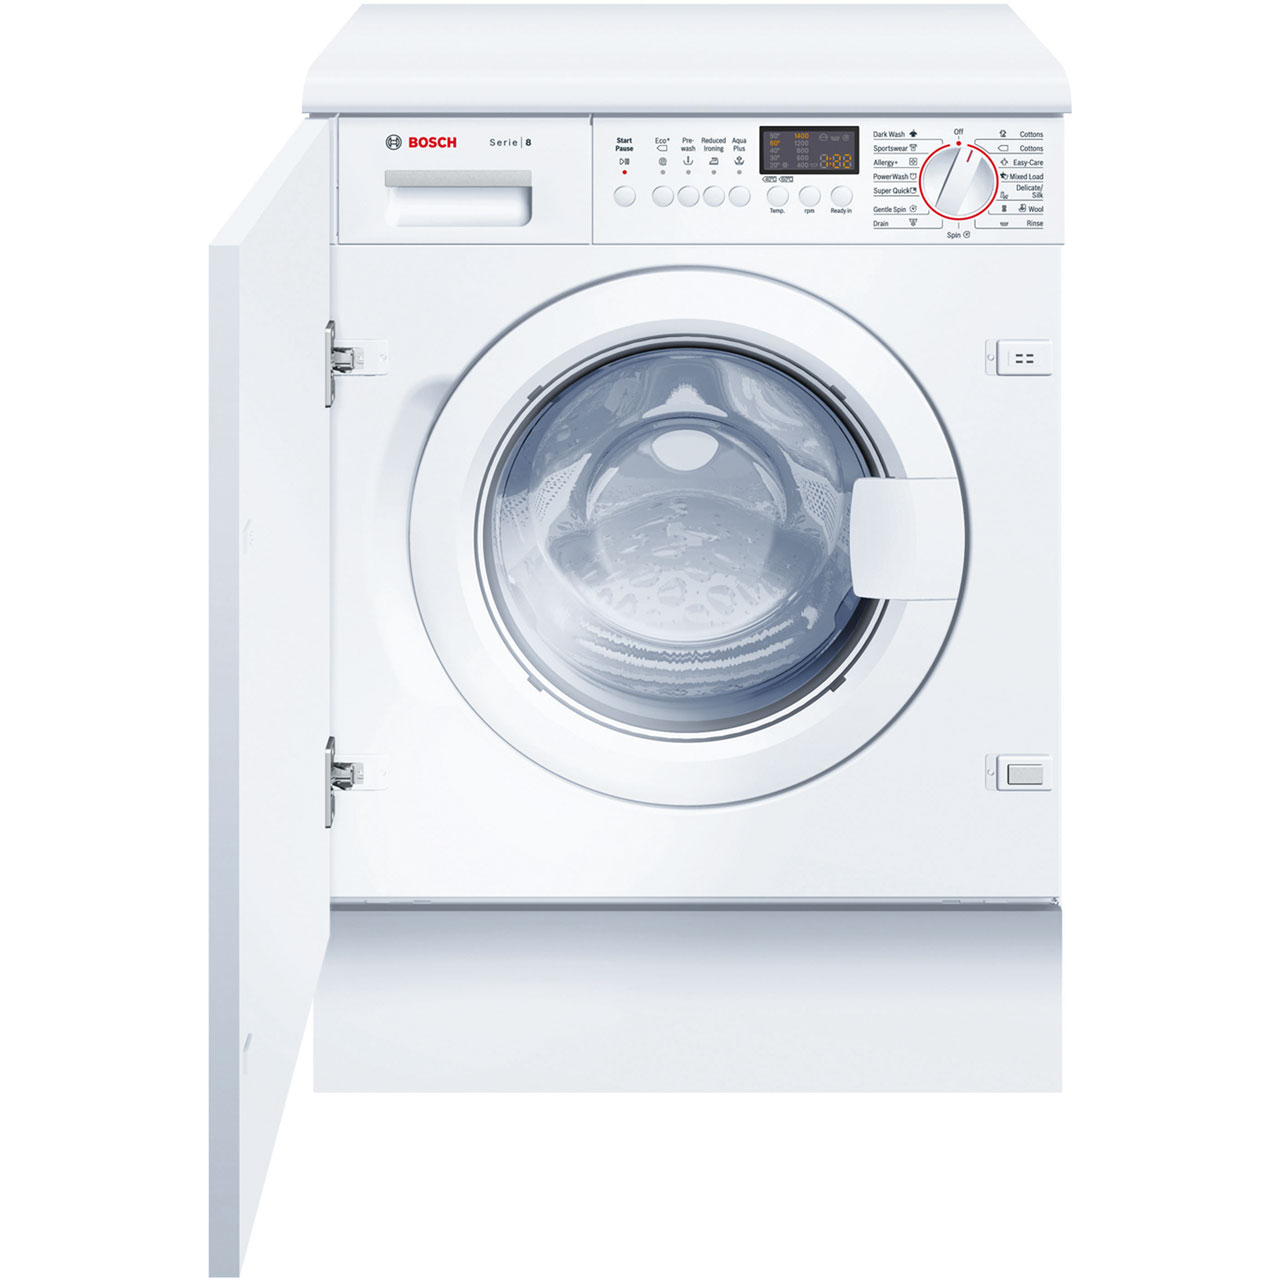 Bosch Serie 8 WIS28441GB Integrated Washing Machine in White